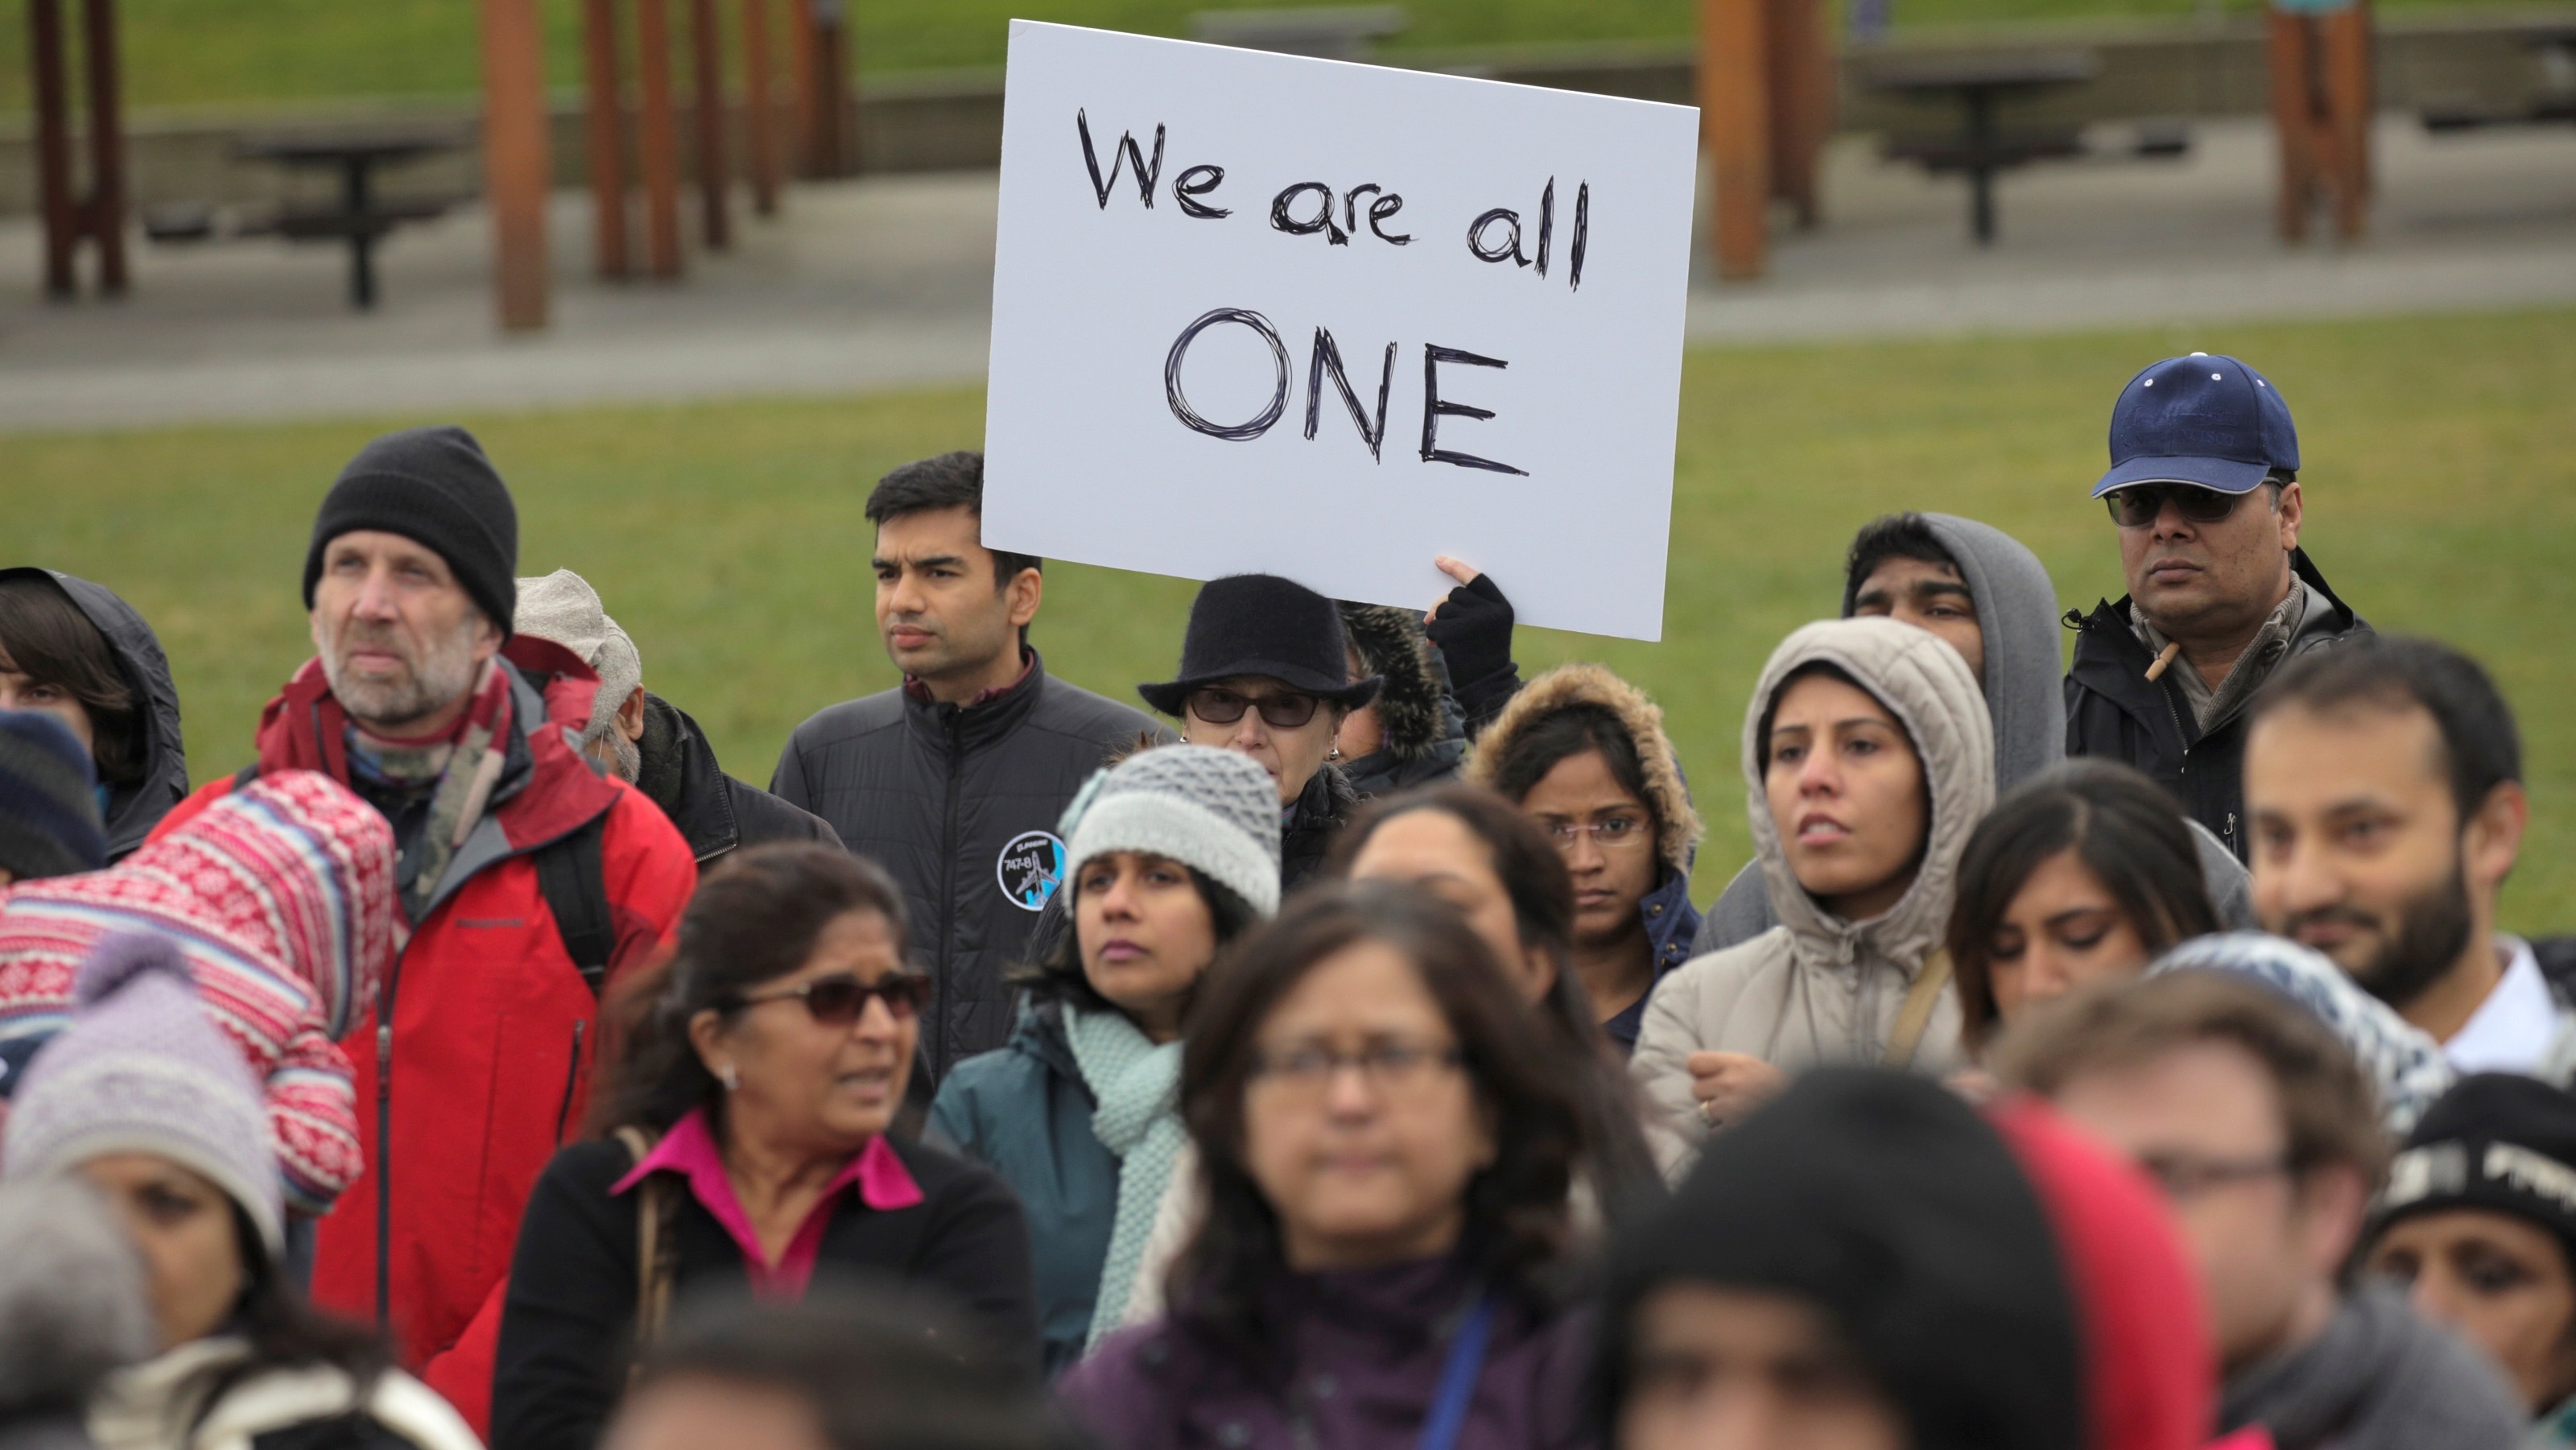 People listen during a vigil in honor of Srinivas Kuchibhotla, an immigrant from India who was recently shot and killed in Kansas, at Crossroads Park in Bellevue, Washington, U.S. March 5, 2017. REUTERS/David Ryder - RTS11KM6